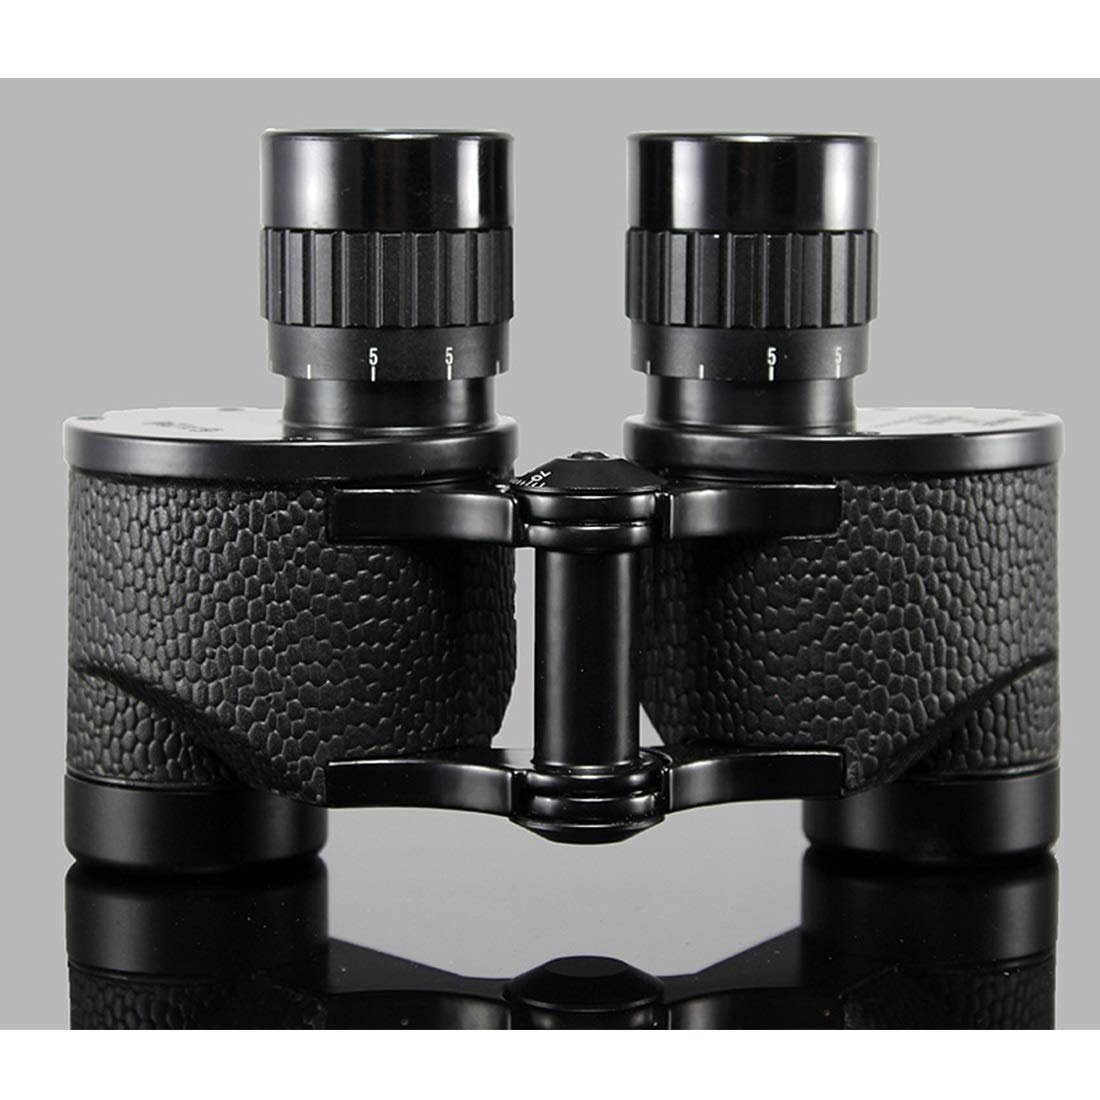 ZGQA-GQA 6x24 Compact Binoculars for Adults Kids Mini Metal Folding Telessope with Weak Light Night Vision for Concert Travel Hiking Bird Watching for Adult (Color : Black) by ZGQA-GQA